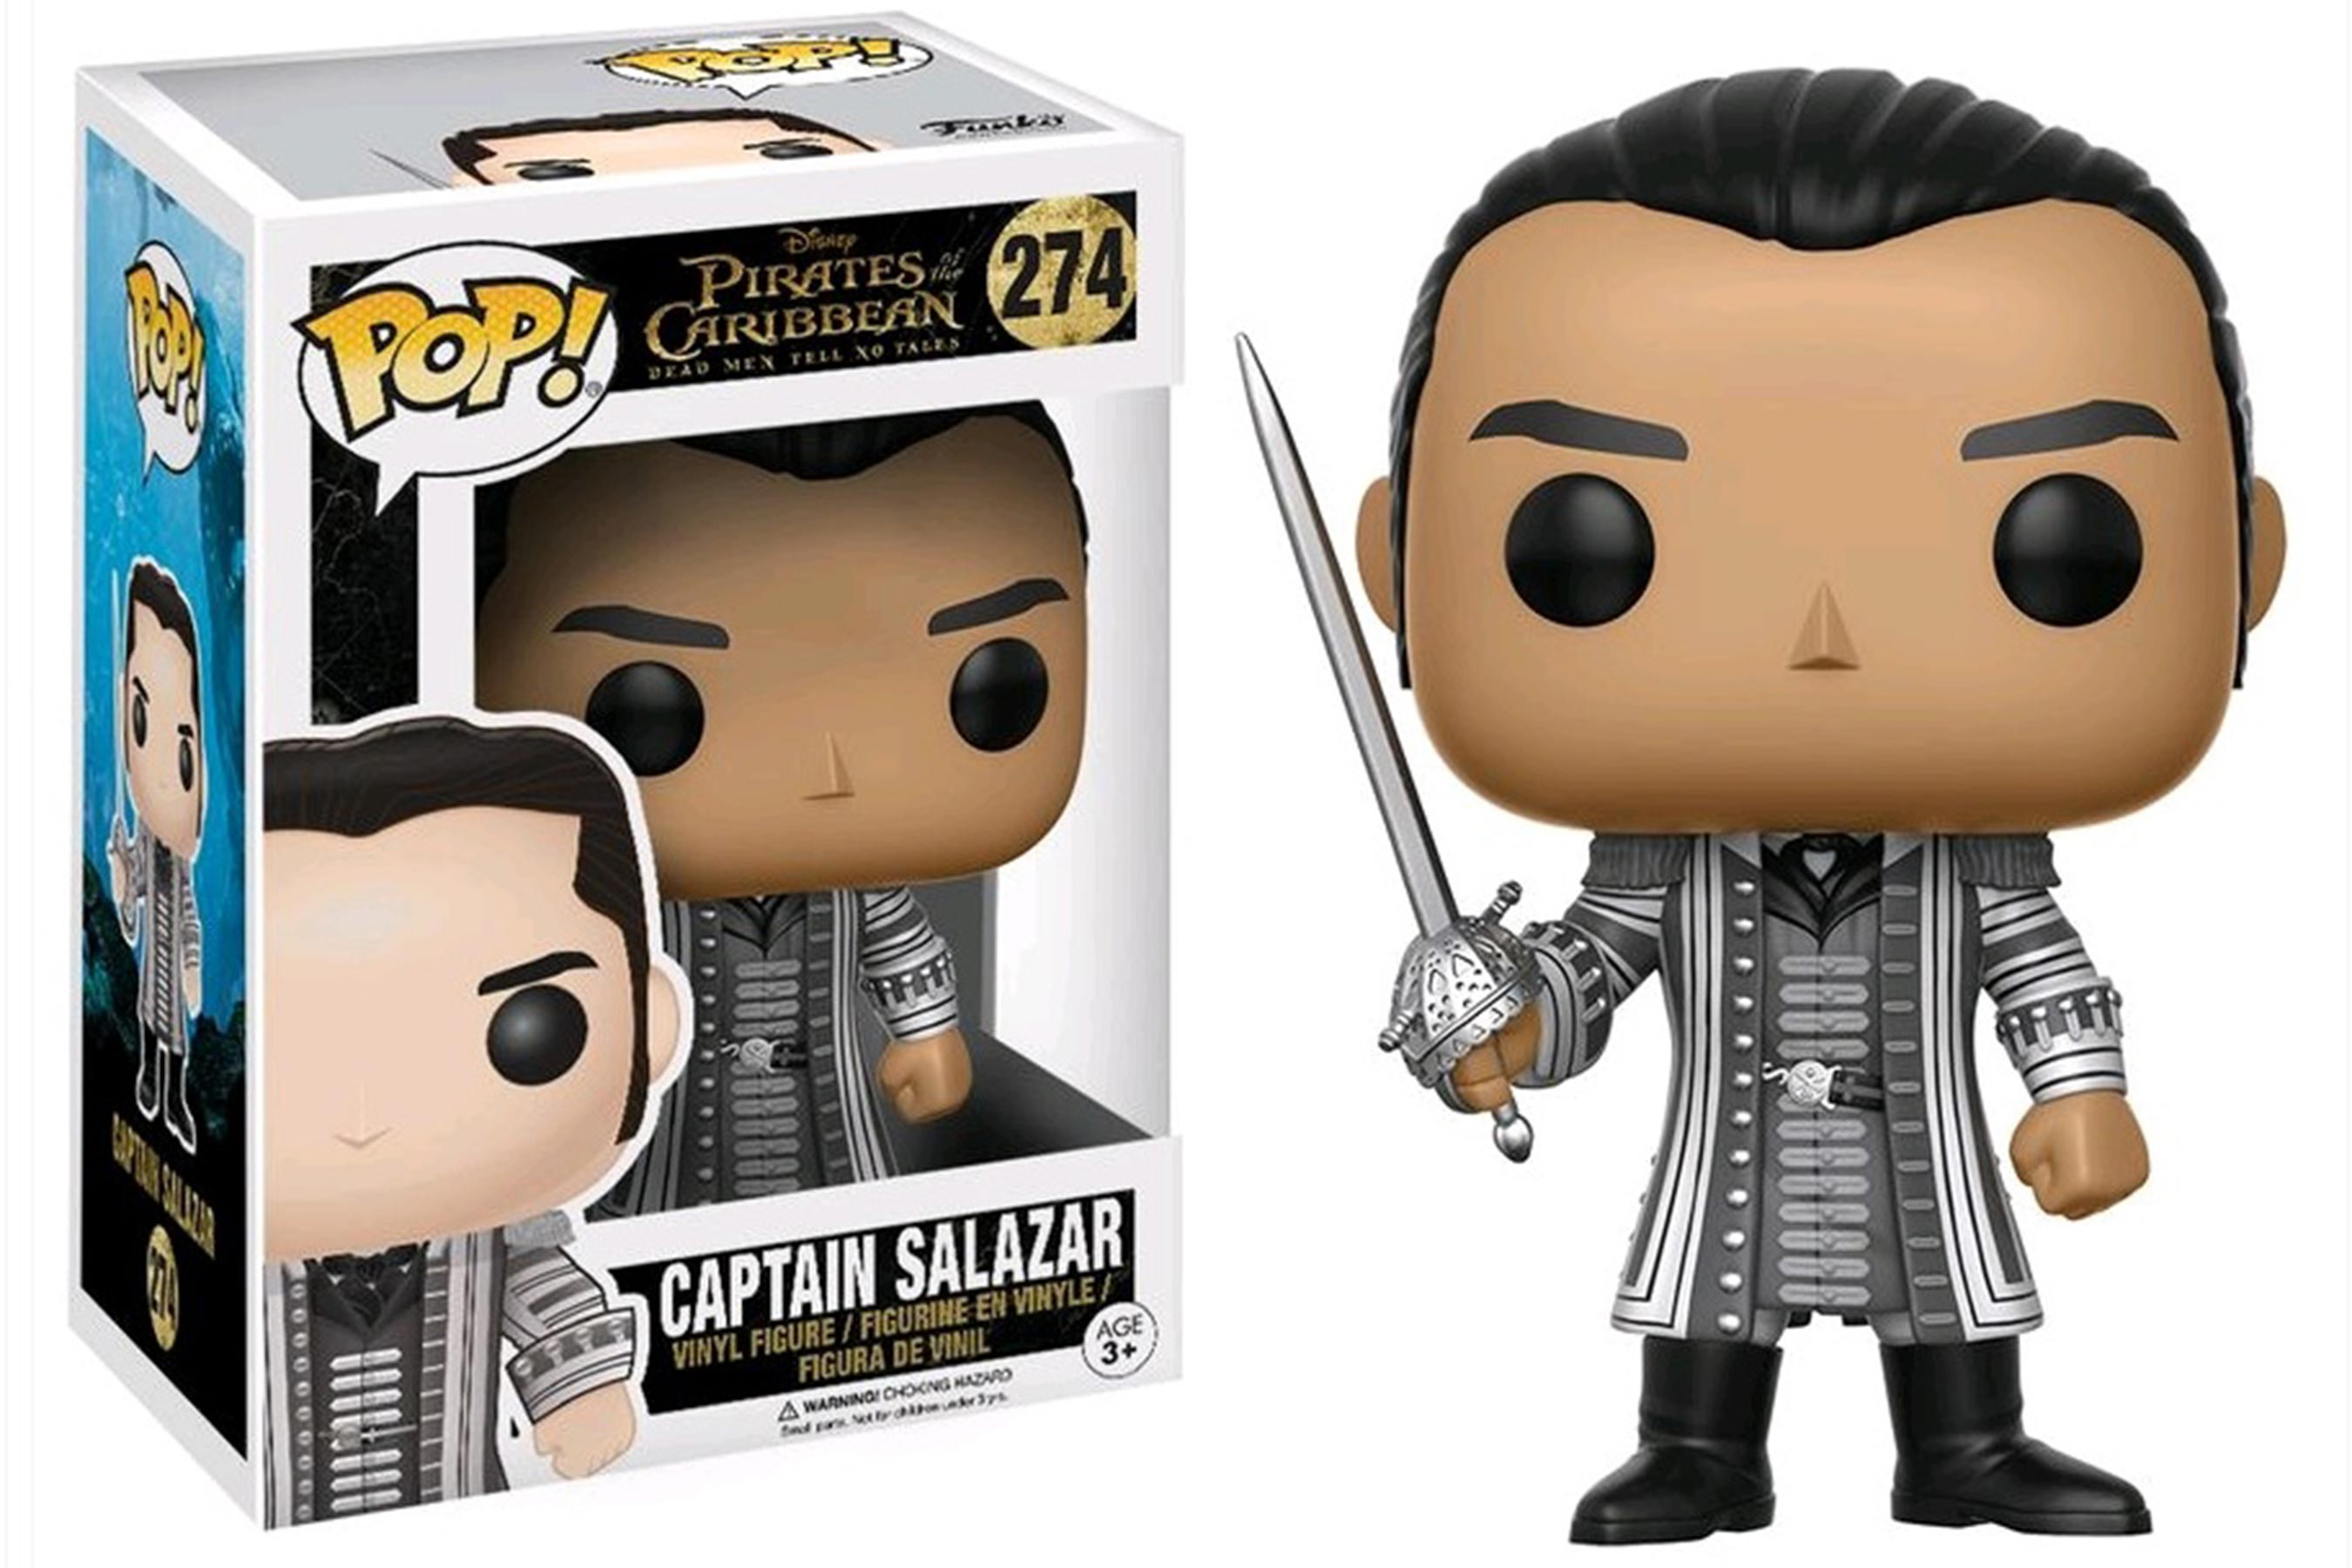 Vinyl New Toy FUNKO POP DISNEY: PIRATES OF THE CARIBBEAN CAPTAIN SALAZAR